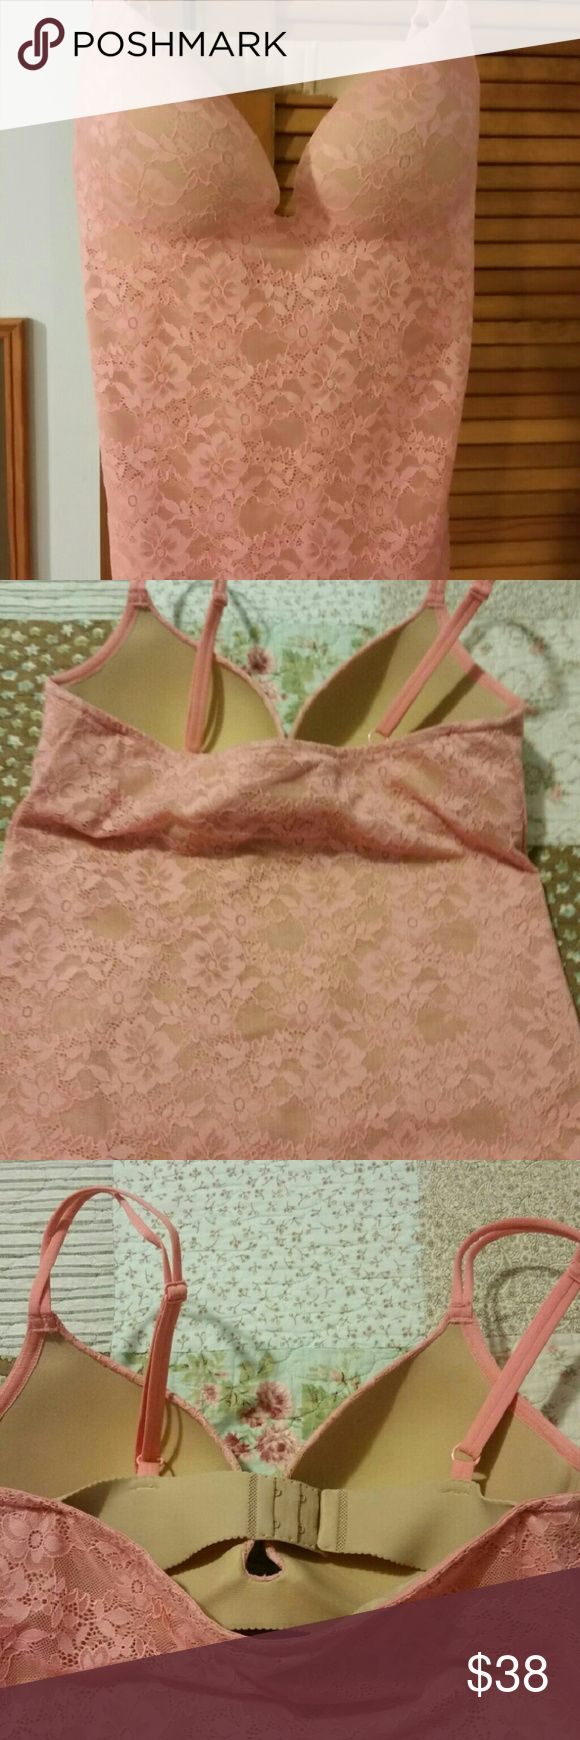 NWOT Victoria Secret  push up Cami-tank  Sz 36C Beautful Peach lace style Victoria Secret cami  with built in puch up bra- 36C. Can be worn alone or under a blouse or blazer. Tried on but never worn.  New Victoria's Secret Intimates & Sleepwear Chemises & Slips